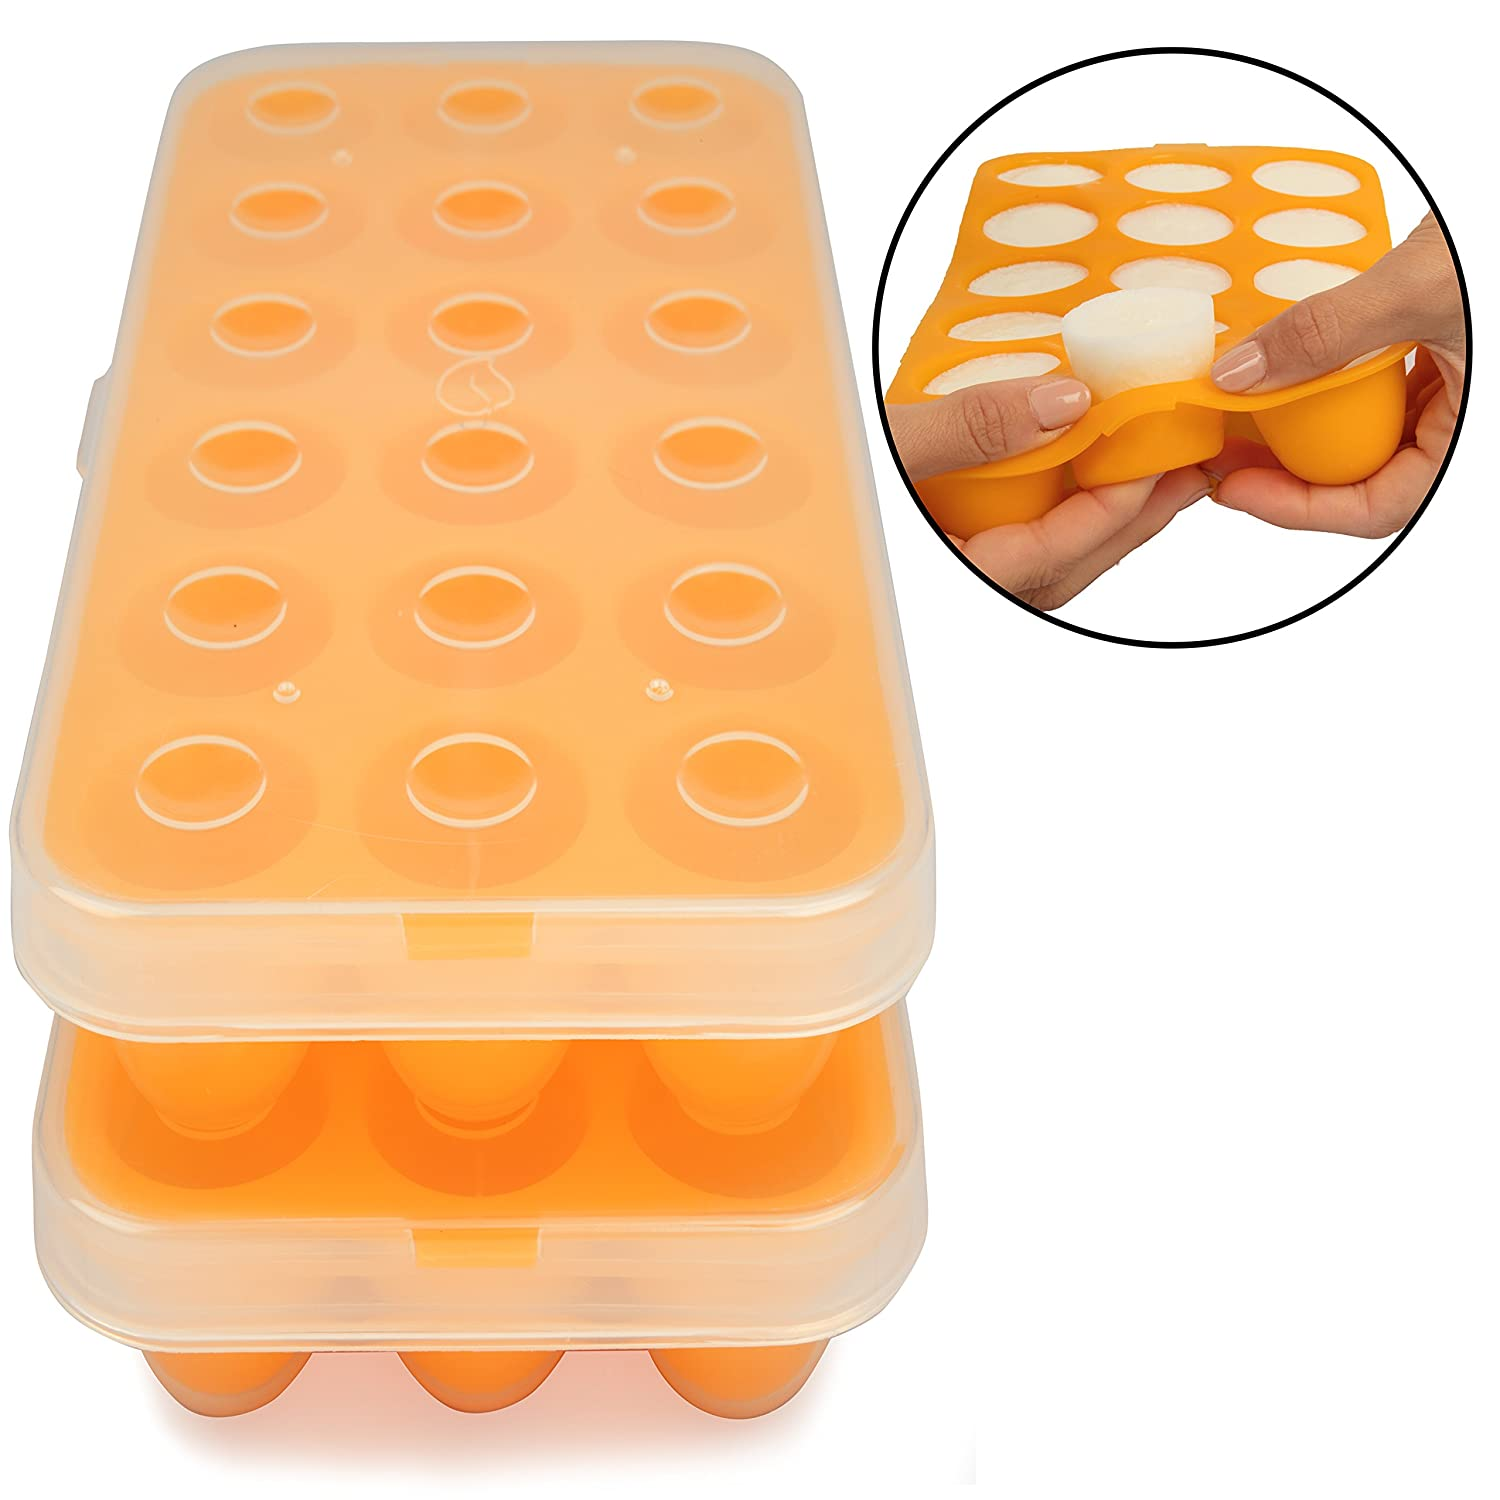 Baby Food Storage Tray - Silicone Pop Out Portion Freezer Tray - Breast Milk and Food Storage Made Easy by Little Sprout   B00IYTTO2Y